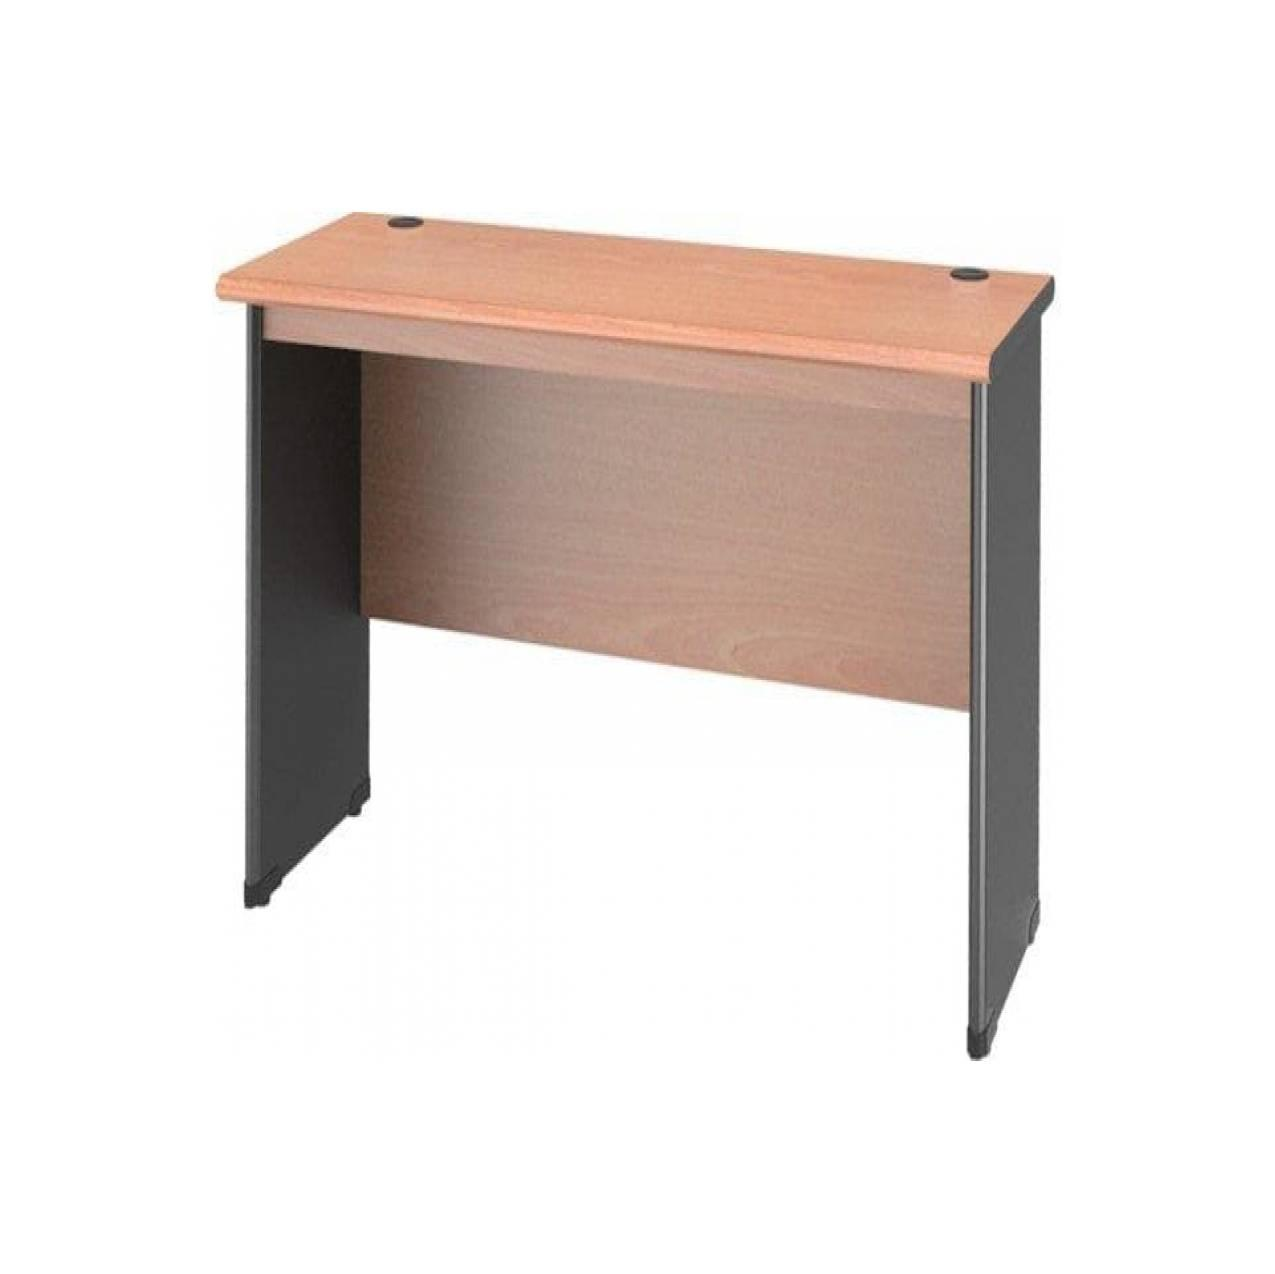 GRAND FURNITURE MEJA SAMPING NOVA BEECH NB 501